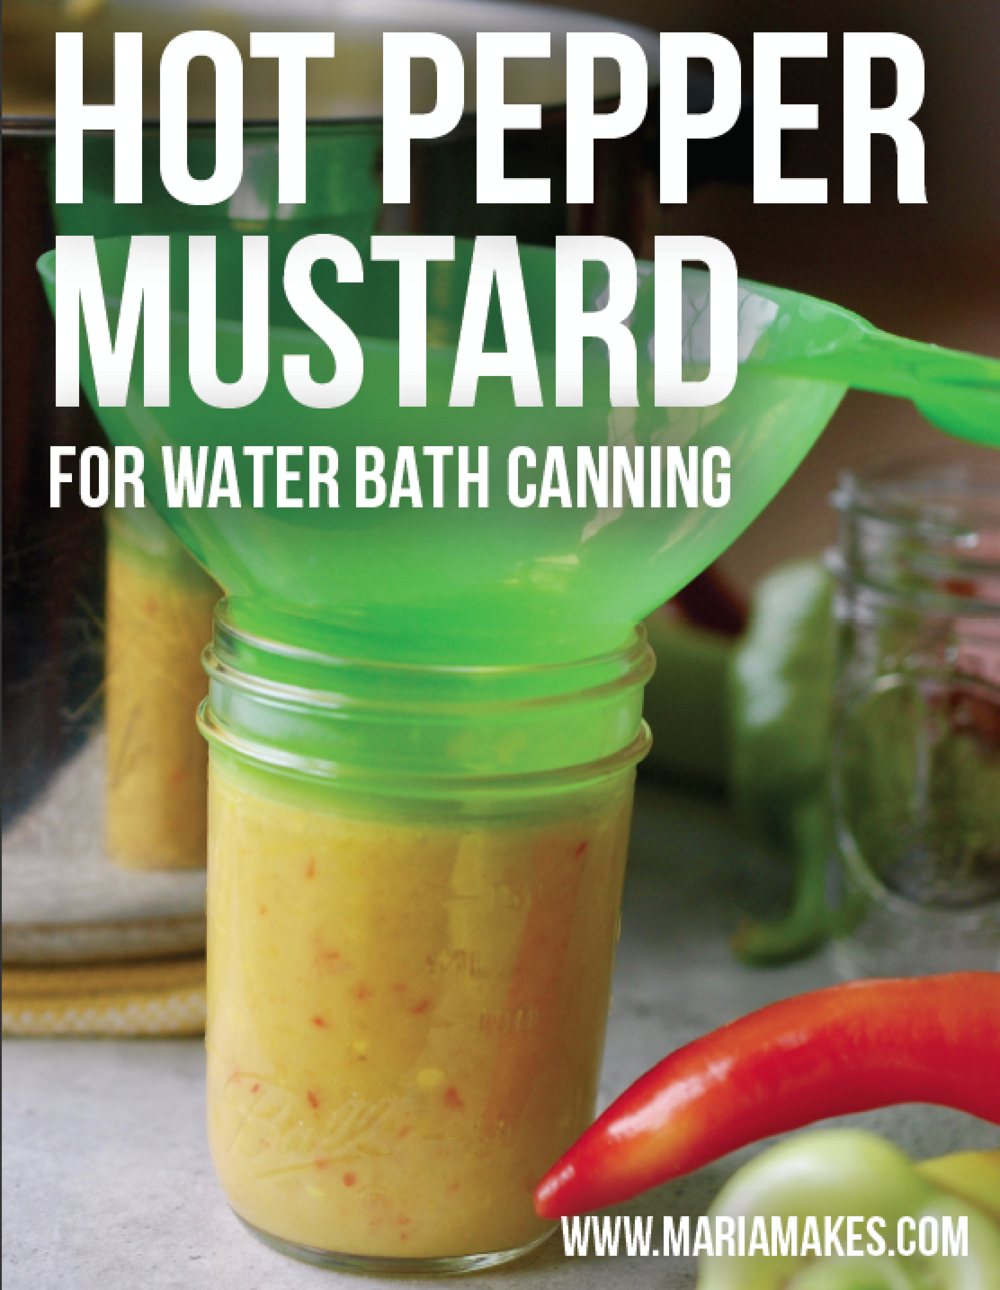 Hot Pepper Mustard – Maria Makes: Hot water bath canning recipe for amazing, spicy, tangy, sweet condiment you never knew you always wanted! Kind of a hybrid between pepper relish and mustard, and it is SO SO good. Perfect for gift giving!